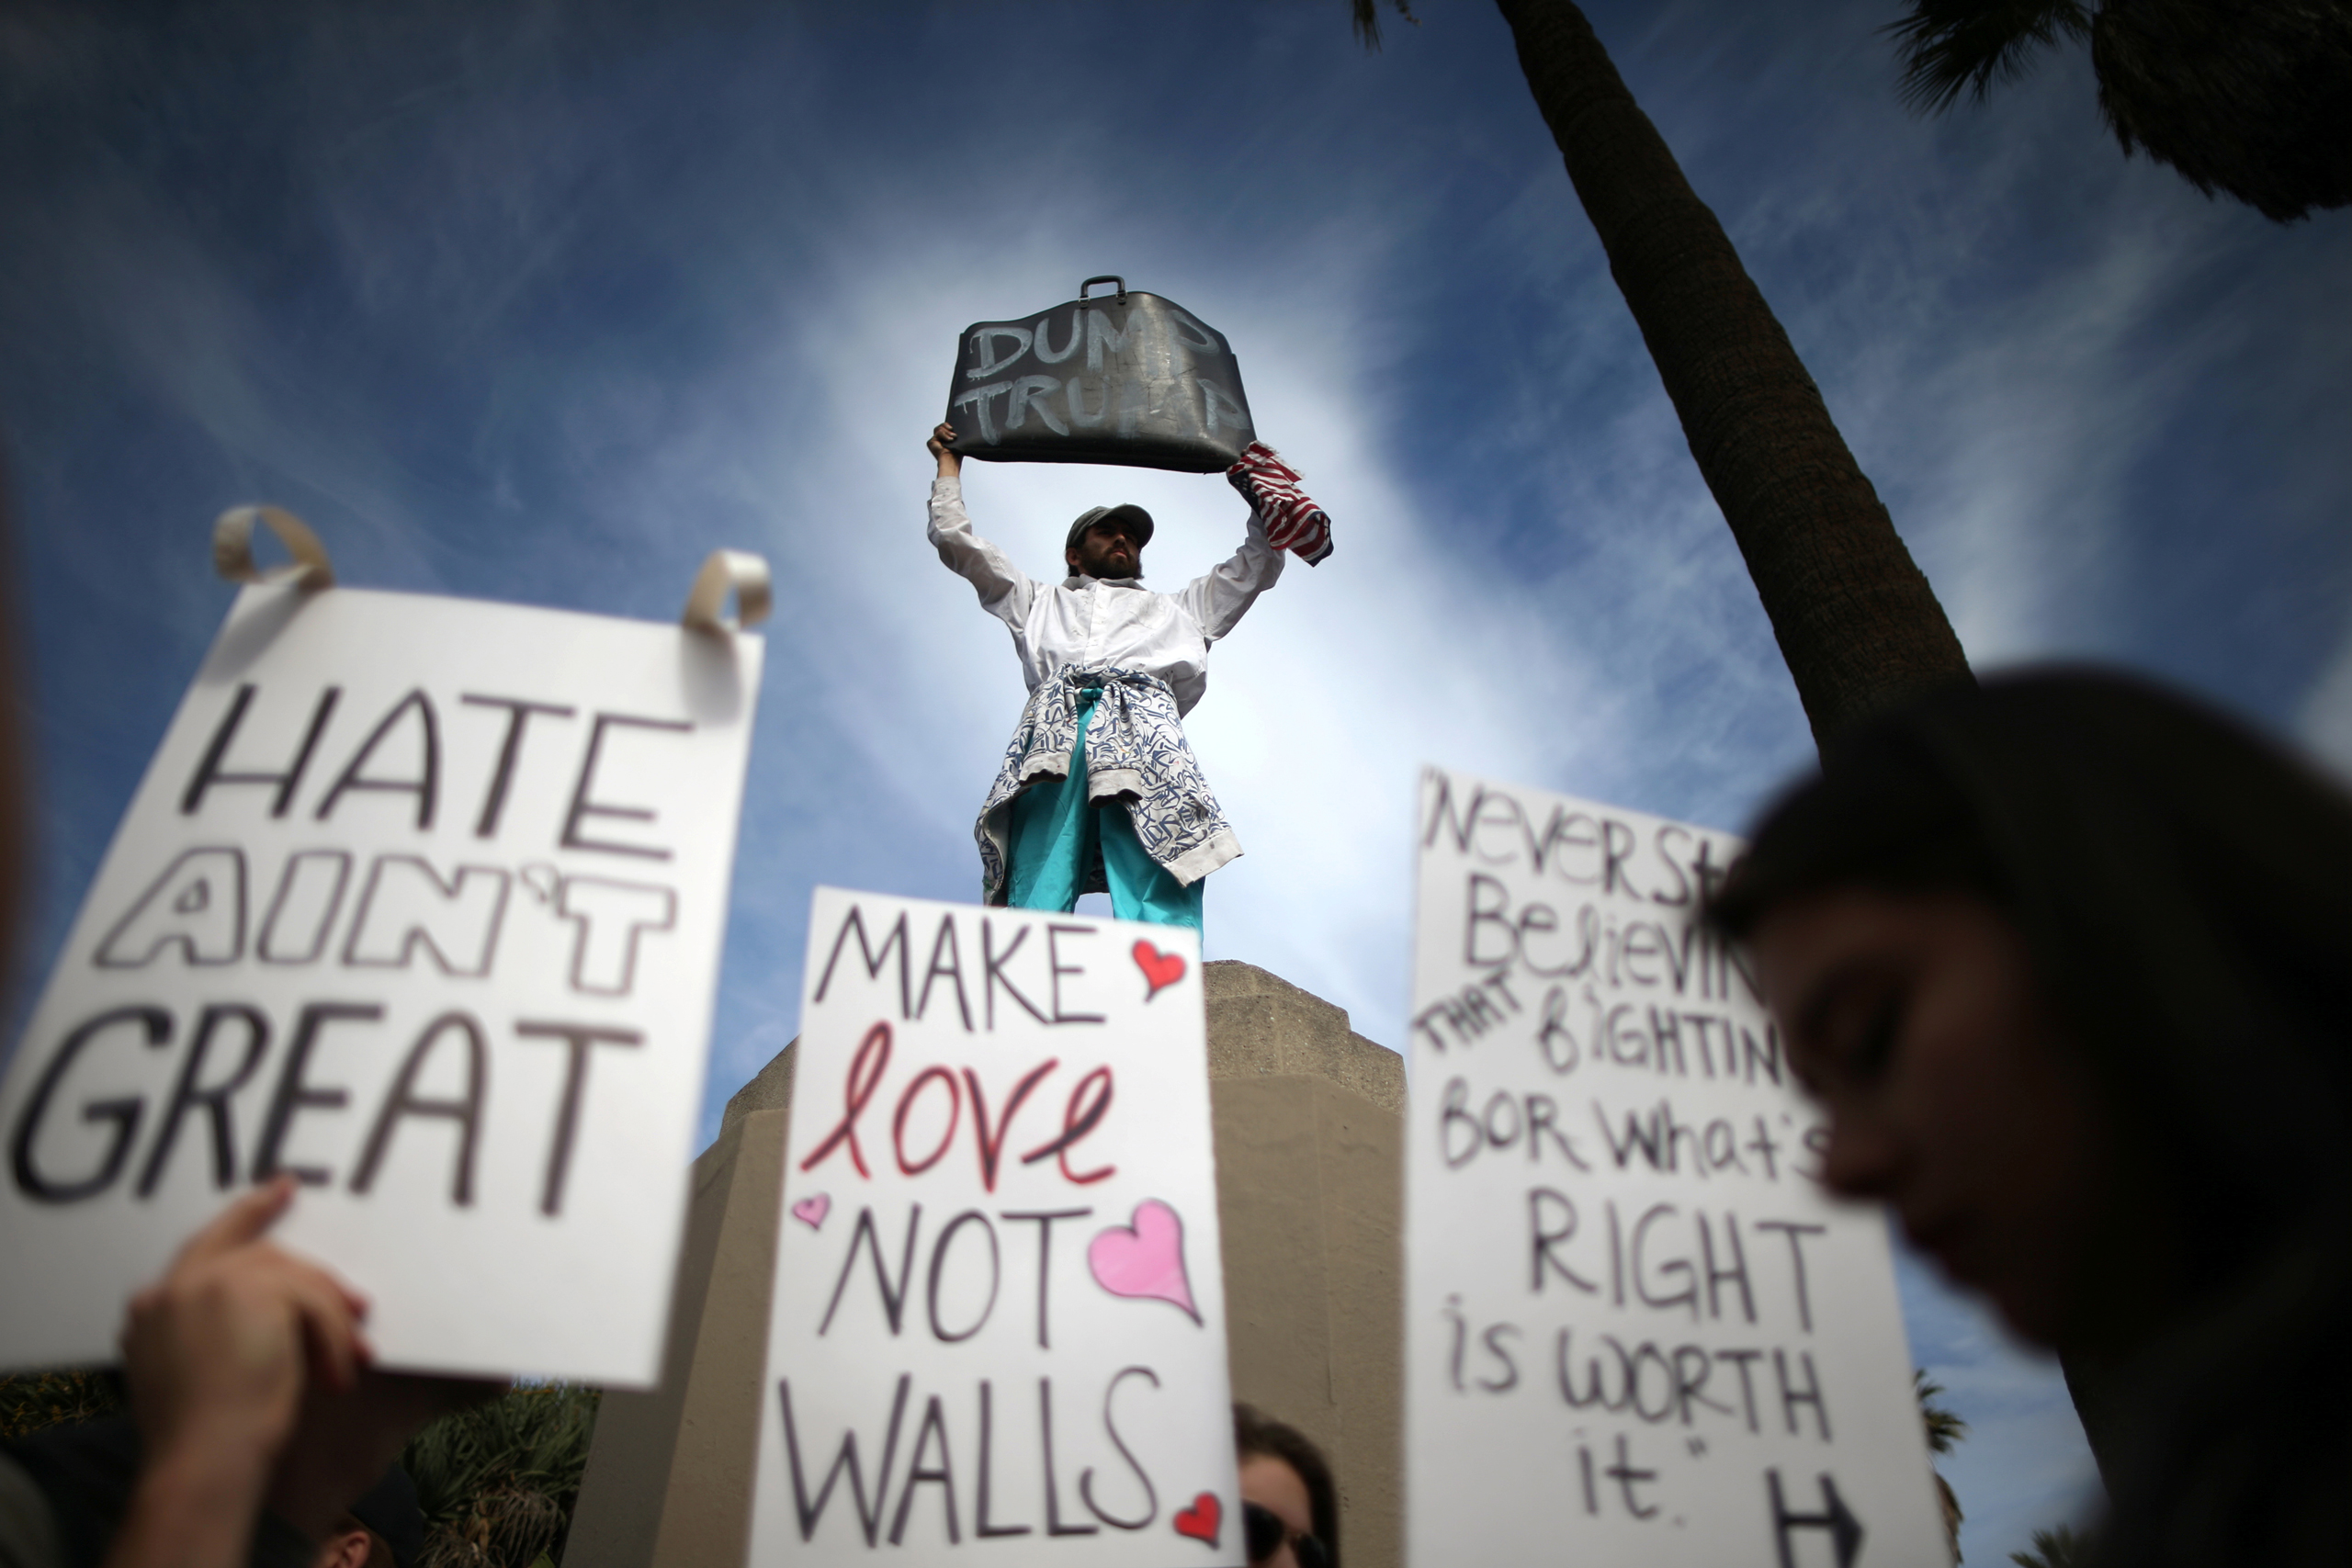 People hold signs during a march and rally against the election of Republican Donald Trump as President of the United States in Los Angeles on Nov. 12, 2016.